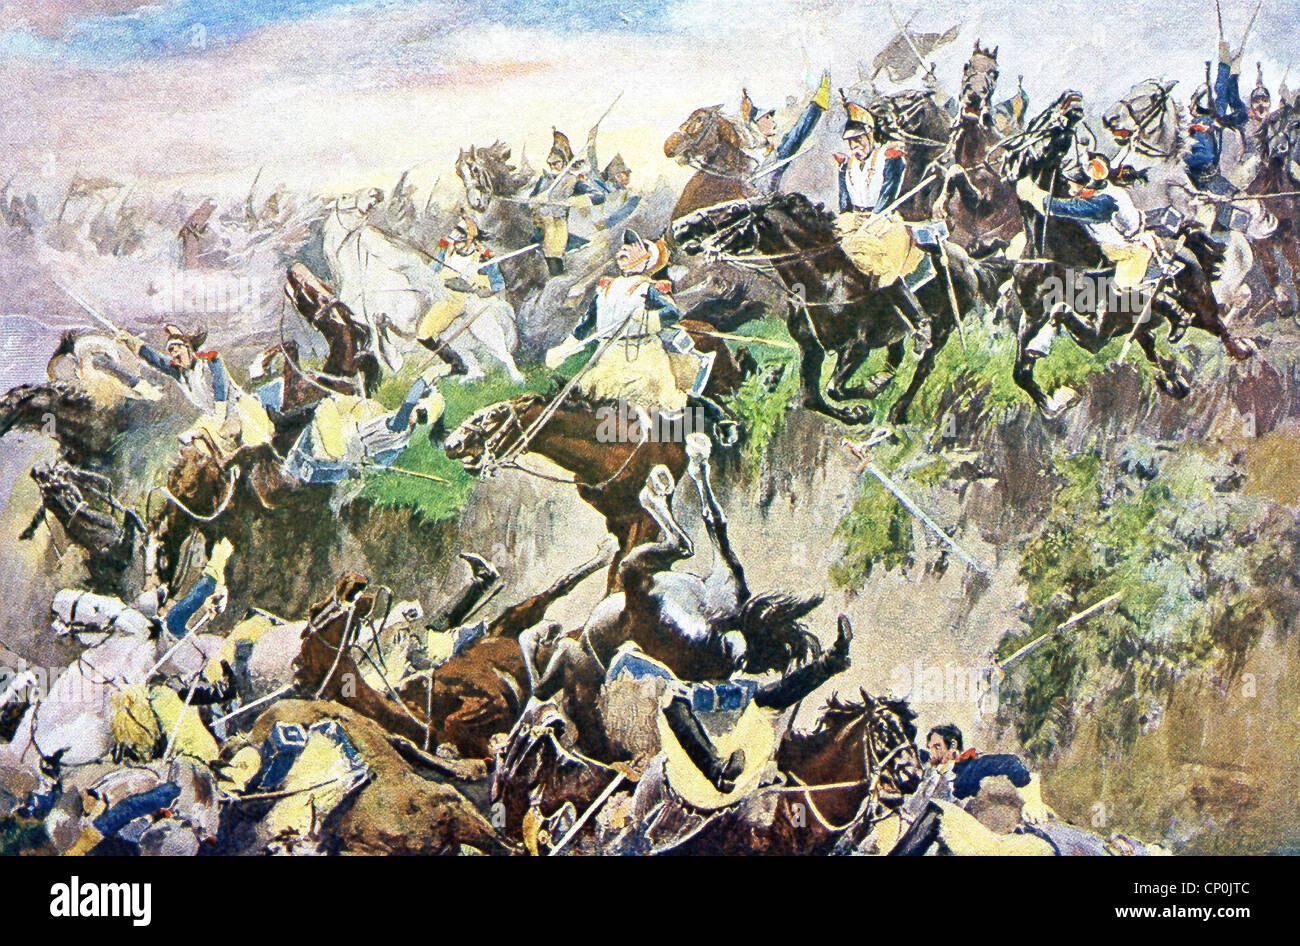 The Battle of Waterloo took place on Sunday, June 18, 1815. Here, the French, under Napoleon, attack the Anglo-Allies. - Stock Image